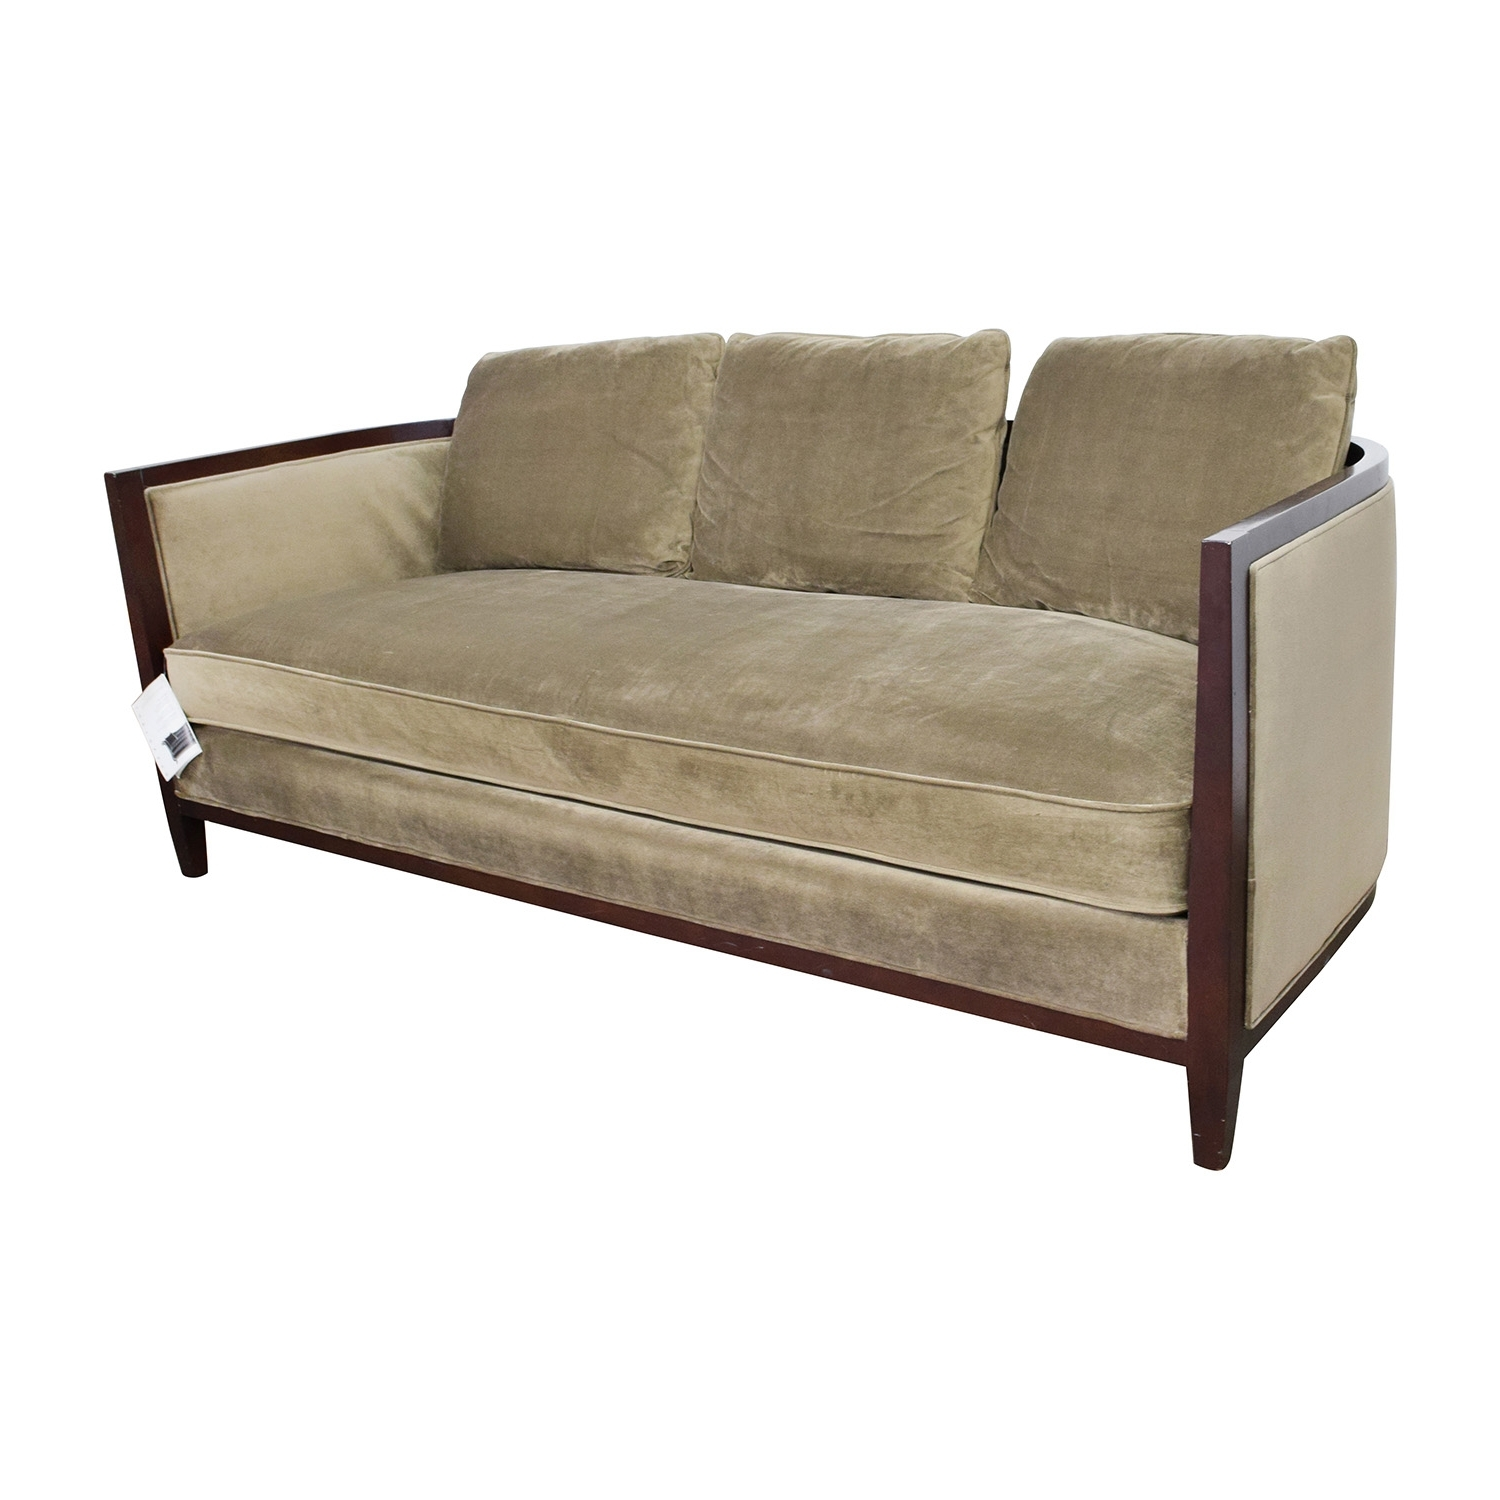 [%85% Off – Bernhardt Bernhardt Tan Single Cushion Sofa / Sofas Inside Well Liked One Cushion Sofas|One Cushion Sofas Pertaining To Popular 85% Off – Bernhardt Bernhardt Tan Single Cushion Sofa / Sofas|Recent One Cushion Sofas In 85% Off – Bernhardt Bernhardt Tan Single Cushion Sofa / Sofas|Famous 85% Off – Bernhardt Bernhardt Tan Single Cushion Sofa / Sofas In One Cushion Sofas%] (View 2 of 15)